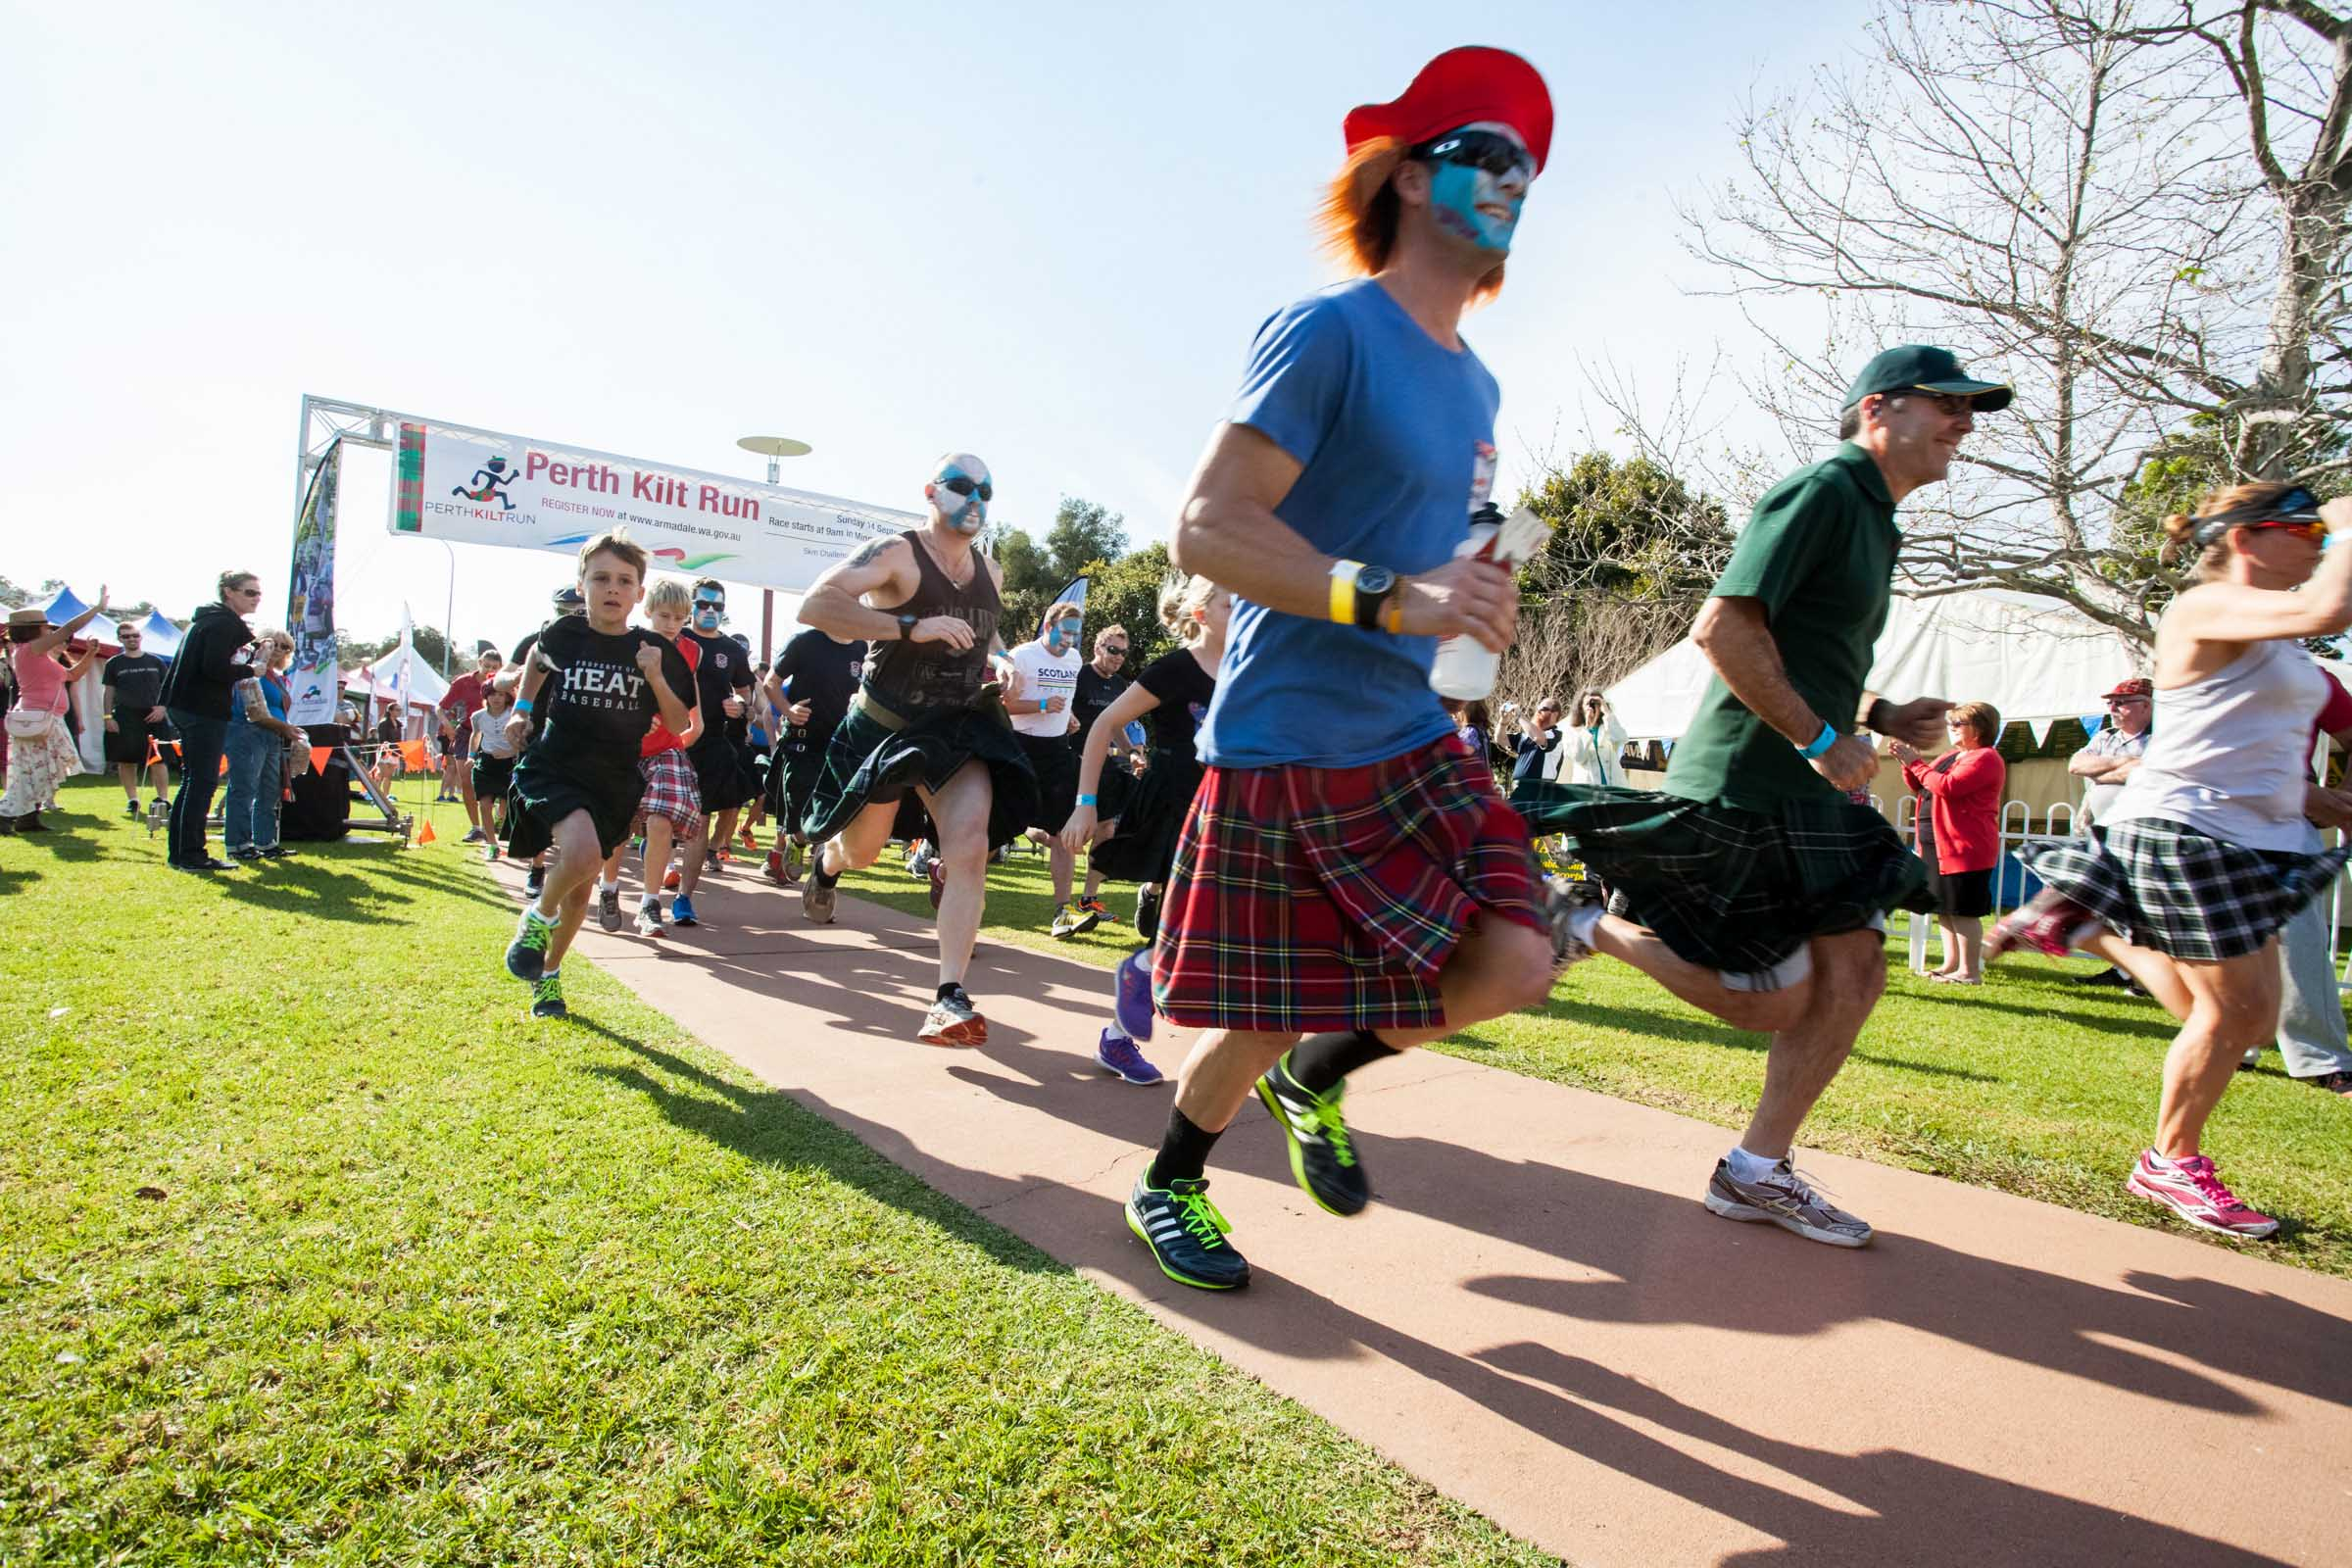 The 2015 Perth Kilt Run attracted participants from across the city. Pictures: Matt Devlin.